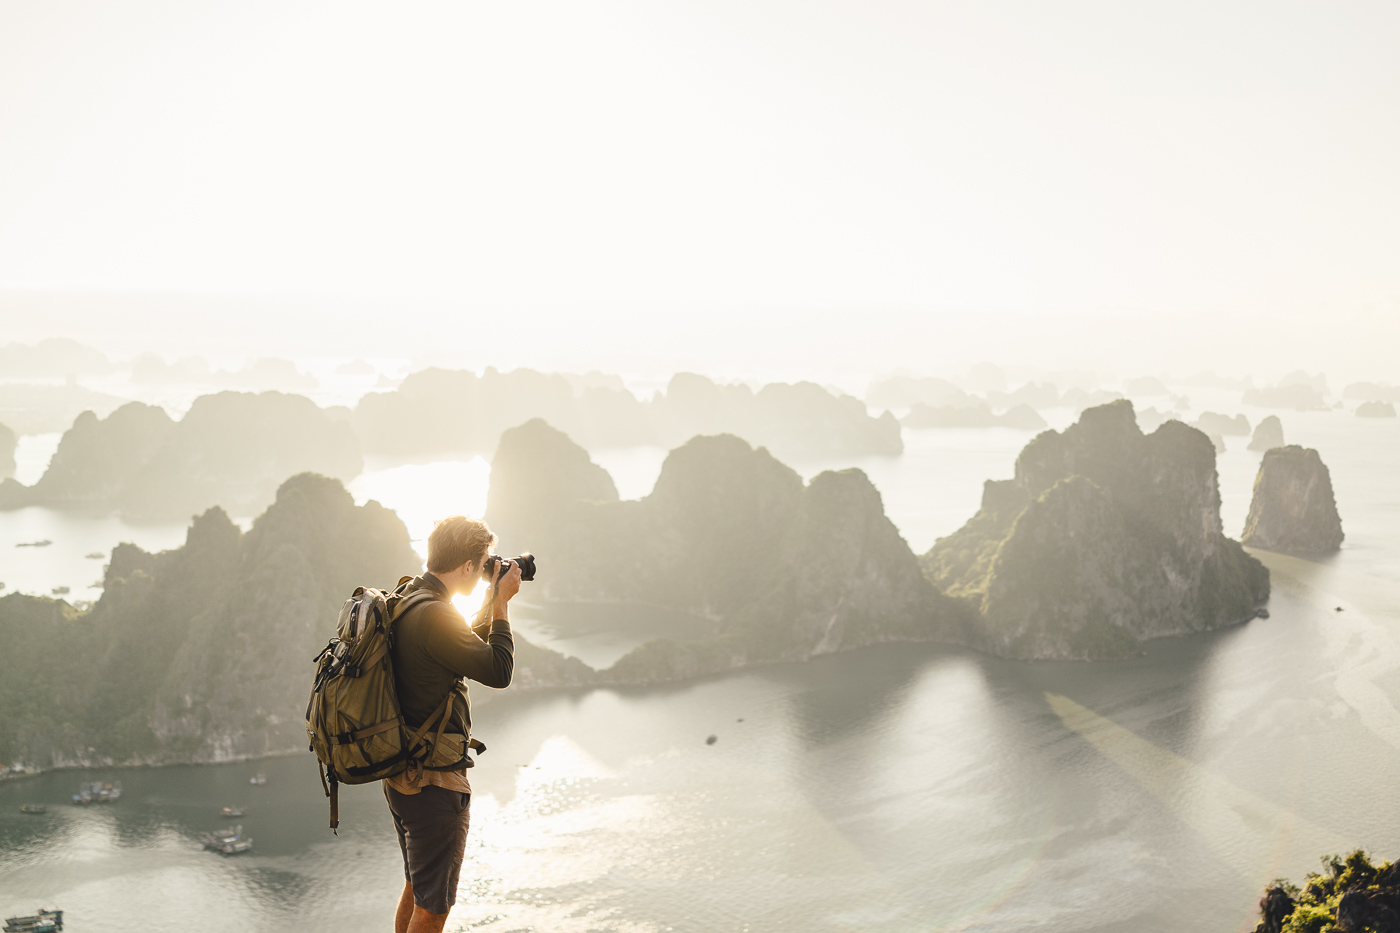 Stefan Haworth photographing Ha long Bay in Vietnam with Sony a7rII and FE 16-35mm f/4